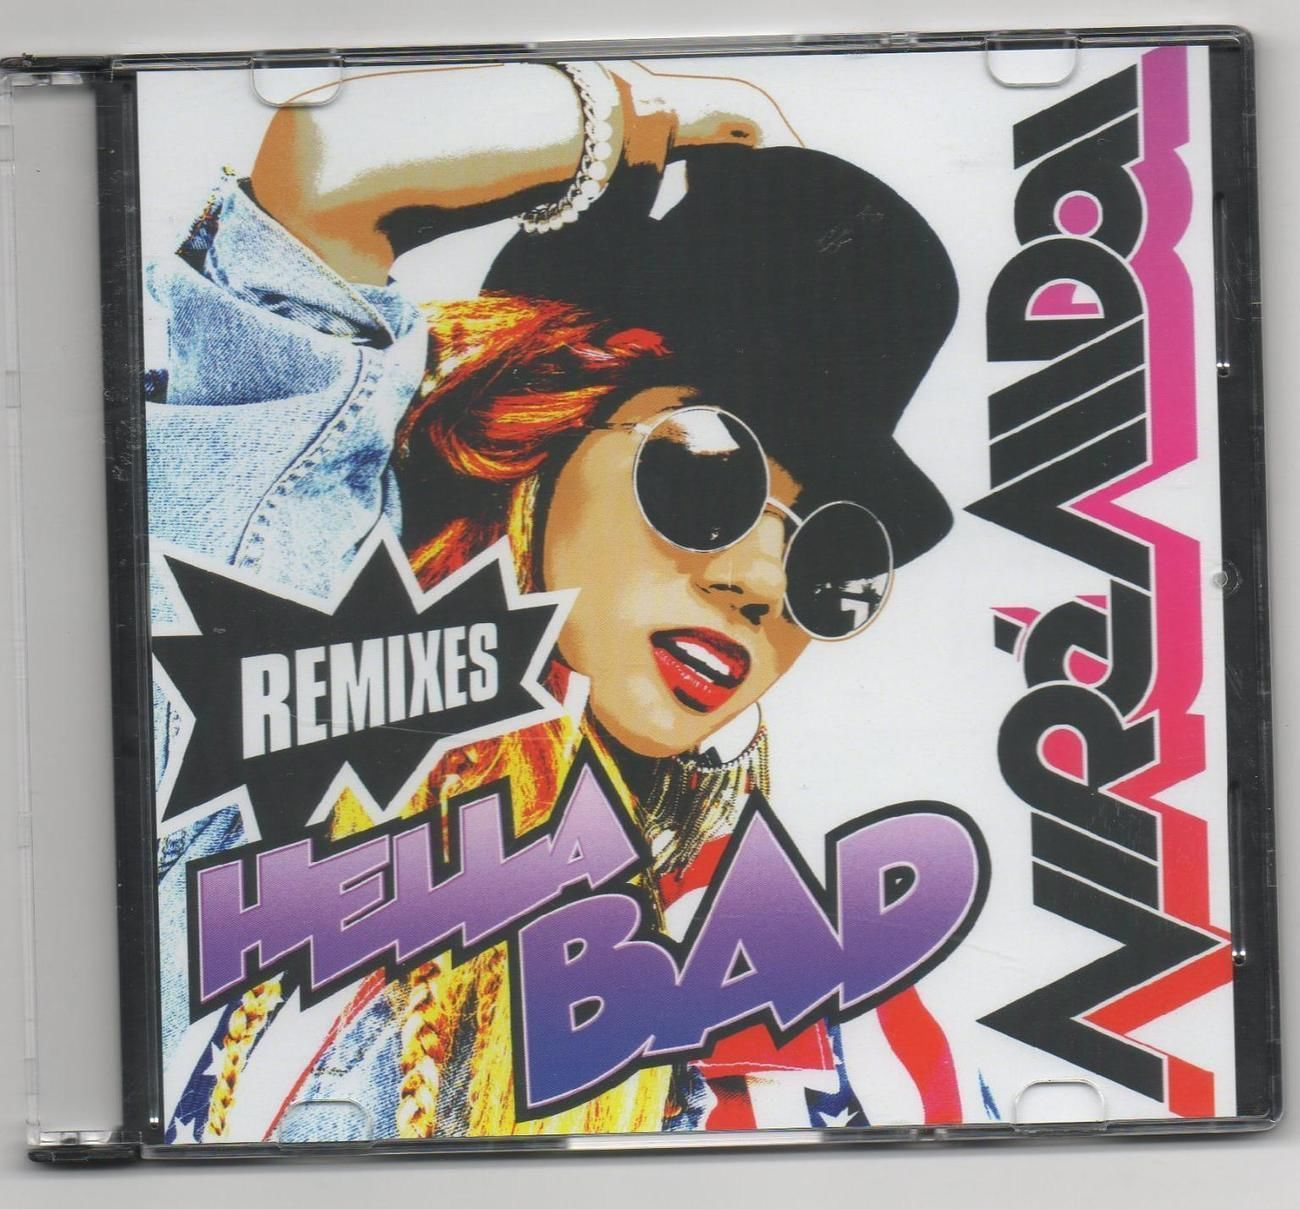 Primary image for Nire Alldai Hella Bad Limited Edition Promo Remixes 2010 CD